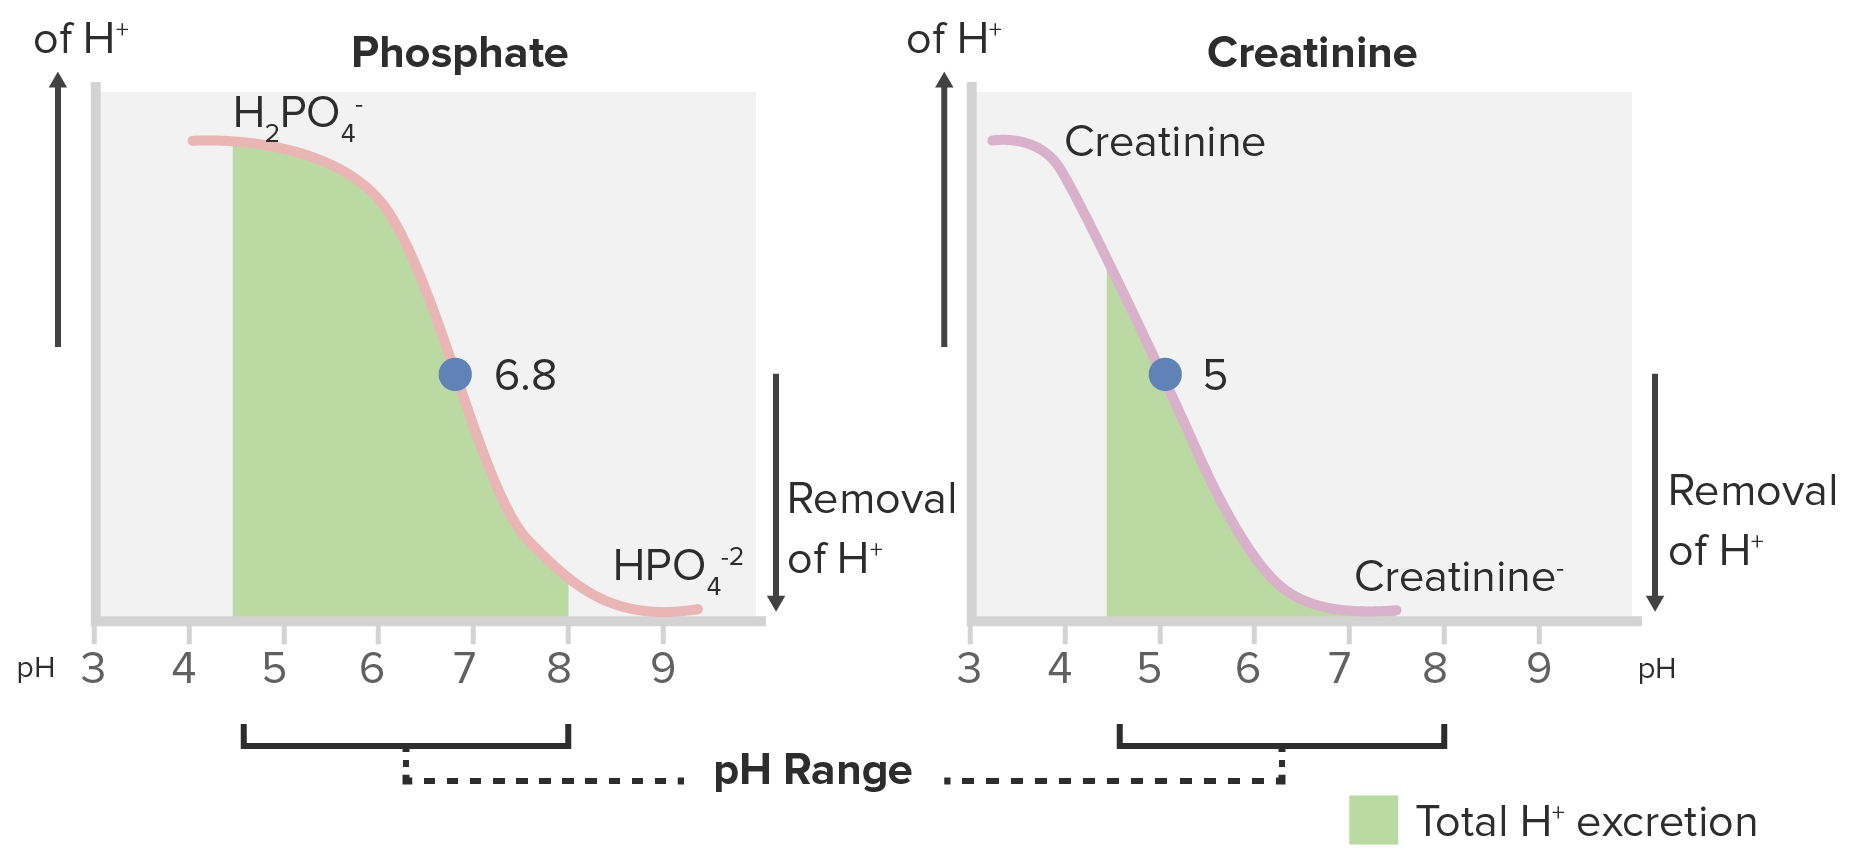 Titration curves for phosphate and creatinine